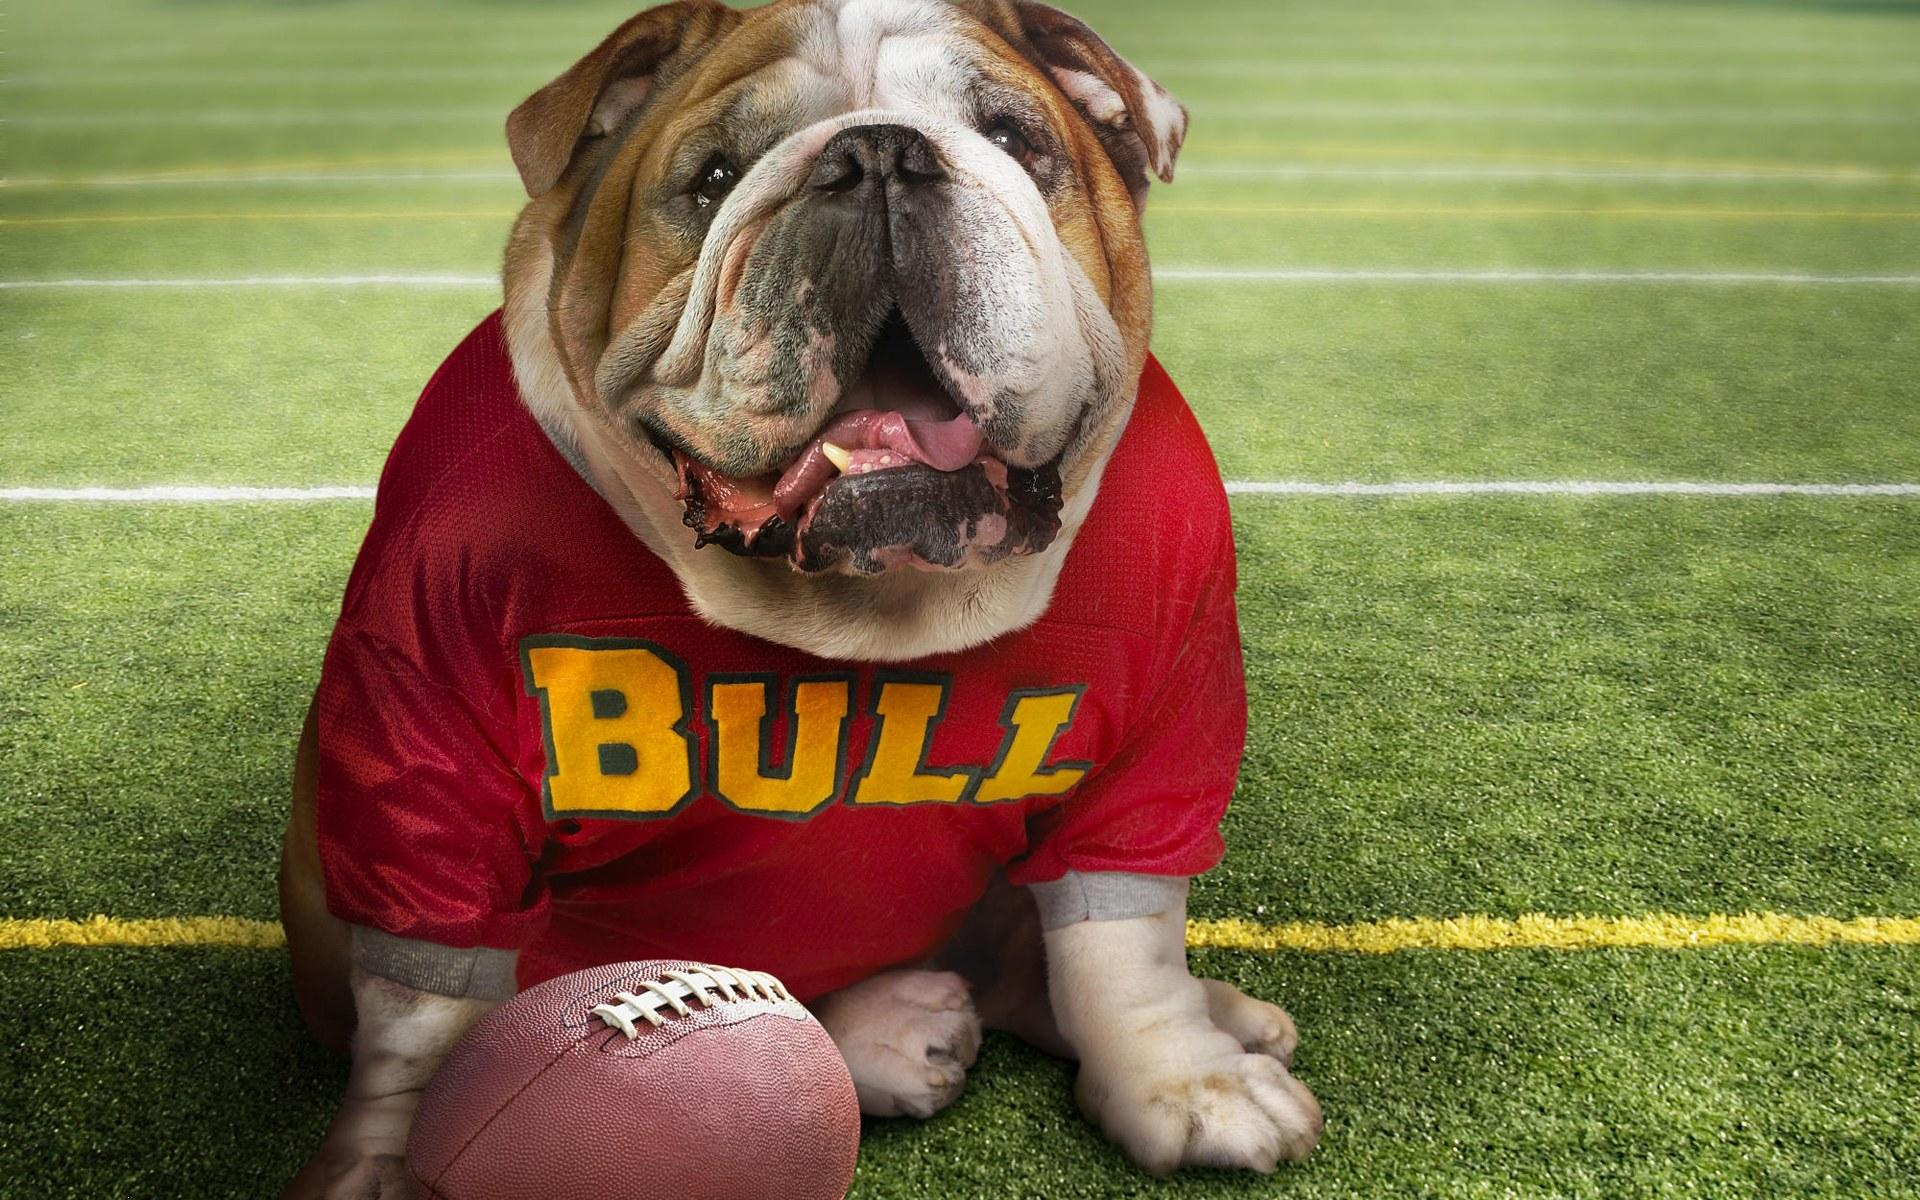 Funny bulldog ,wallpapers,images,